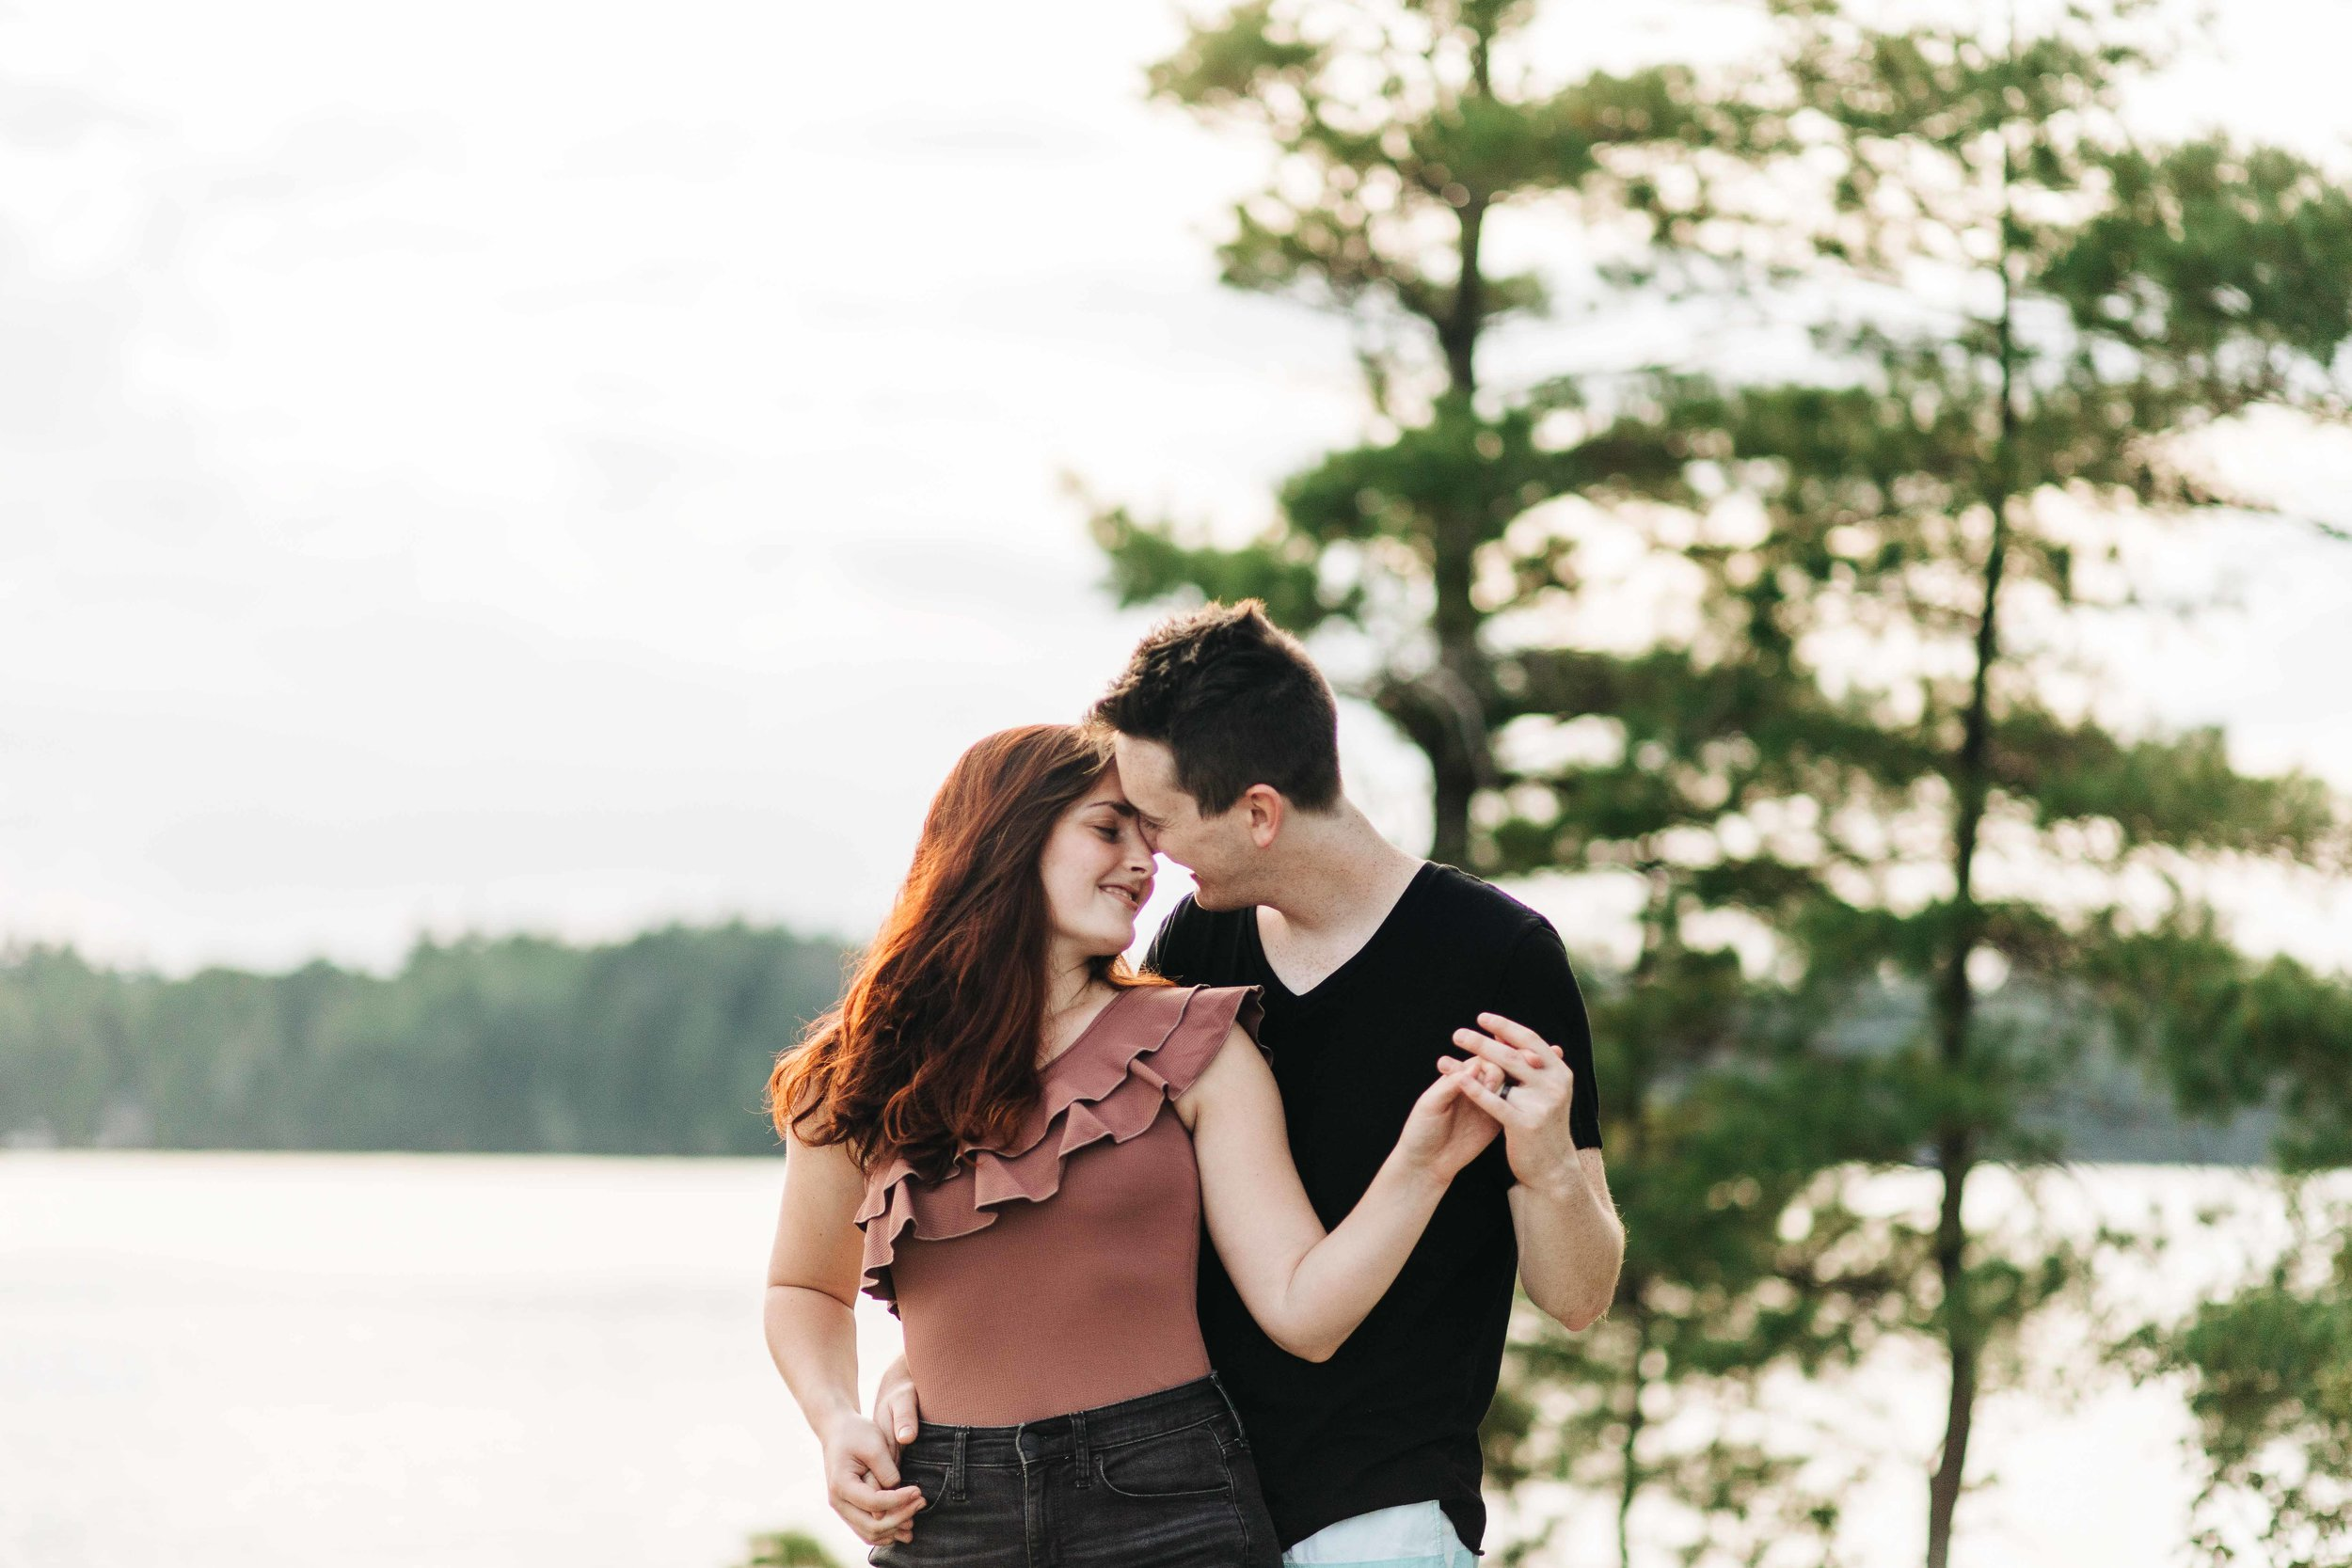 Kortni&Mikey-Saranac-Lake-Engagement-Session-Adirondack-Mountains-Clarisse-Rae-Photo-&-Video-Southern-California-Wedding-Photographer-&-Videographer_6